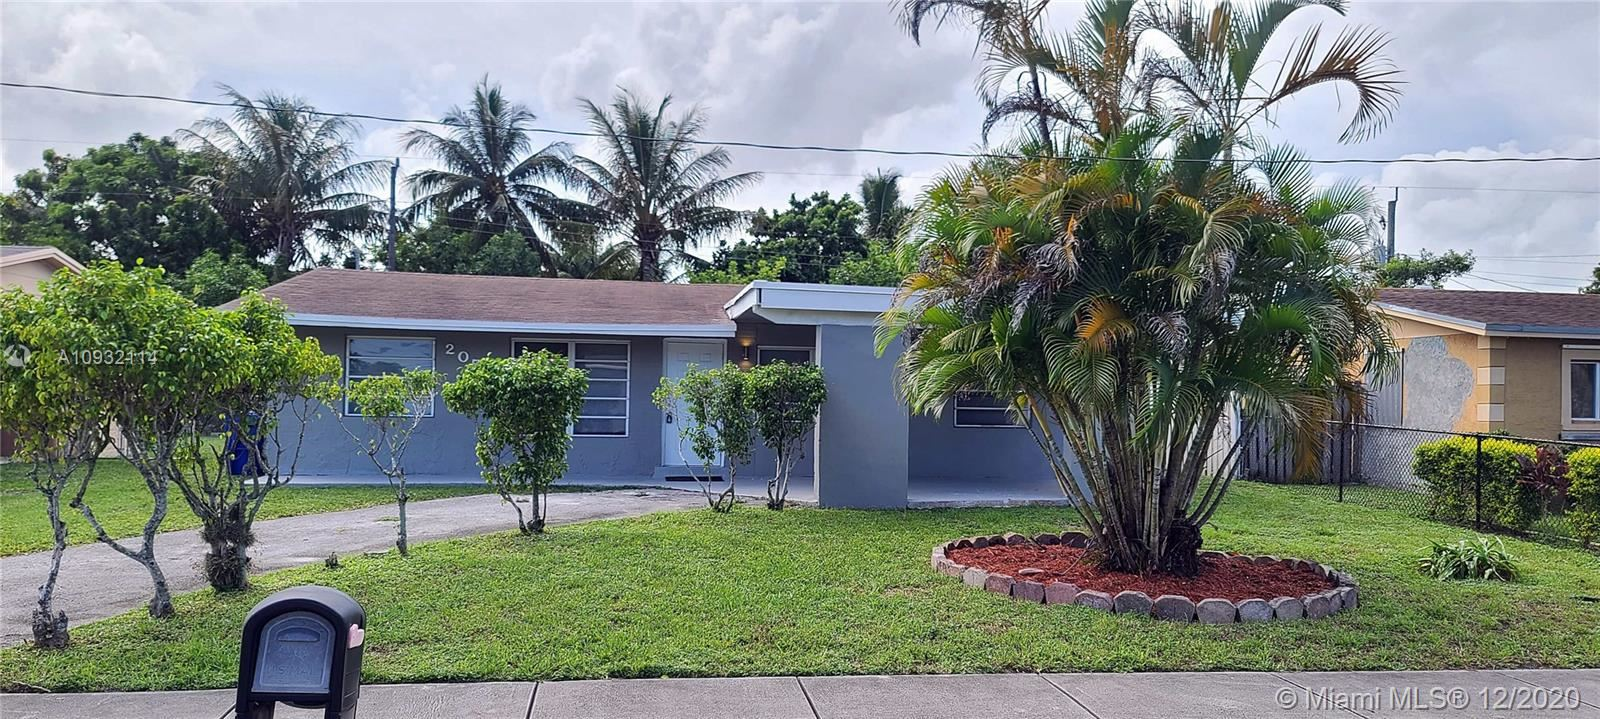 2051 NW 28th Ave, Fort Lauderdale, FL 33311 - #: A10932114